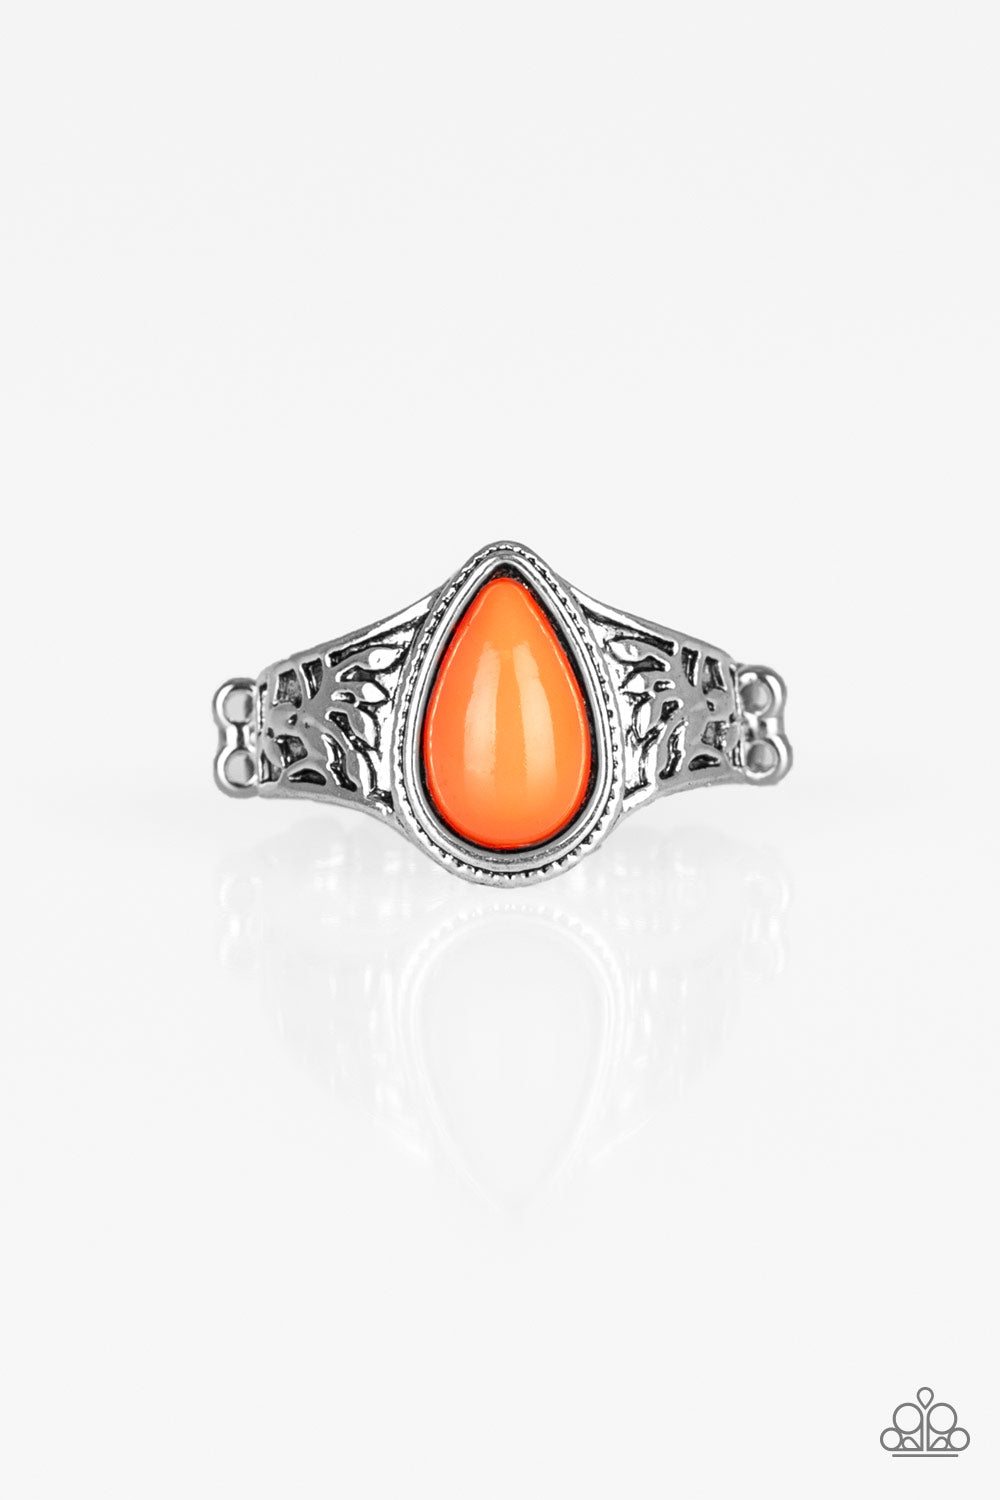 The Zest Of Intentions Orange Ring Paparazzi Accessories Bedazzle Me Pretty Mobile Fashion Boutique